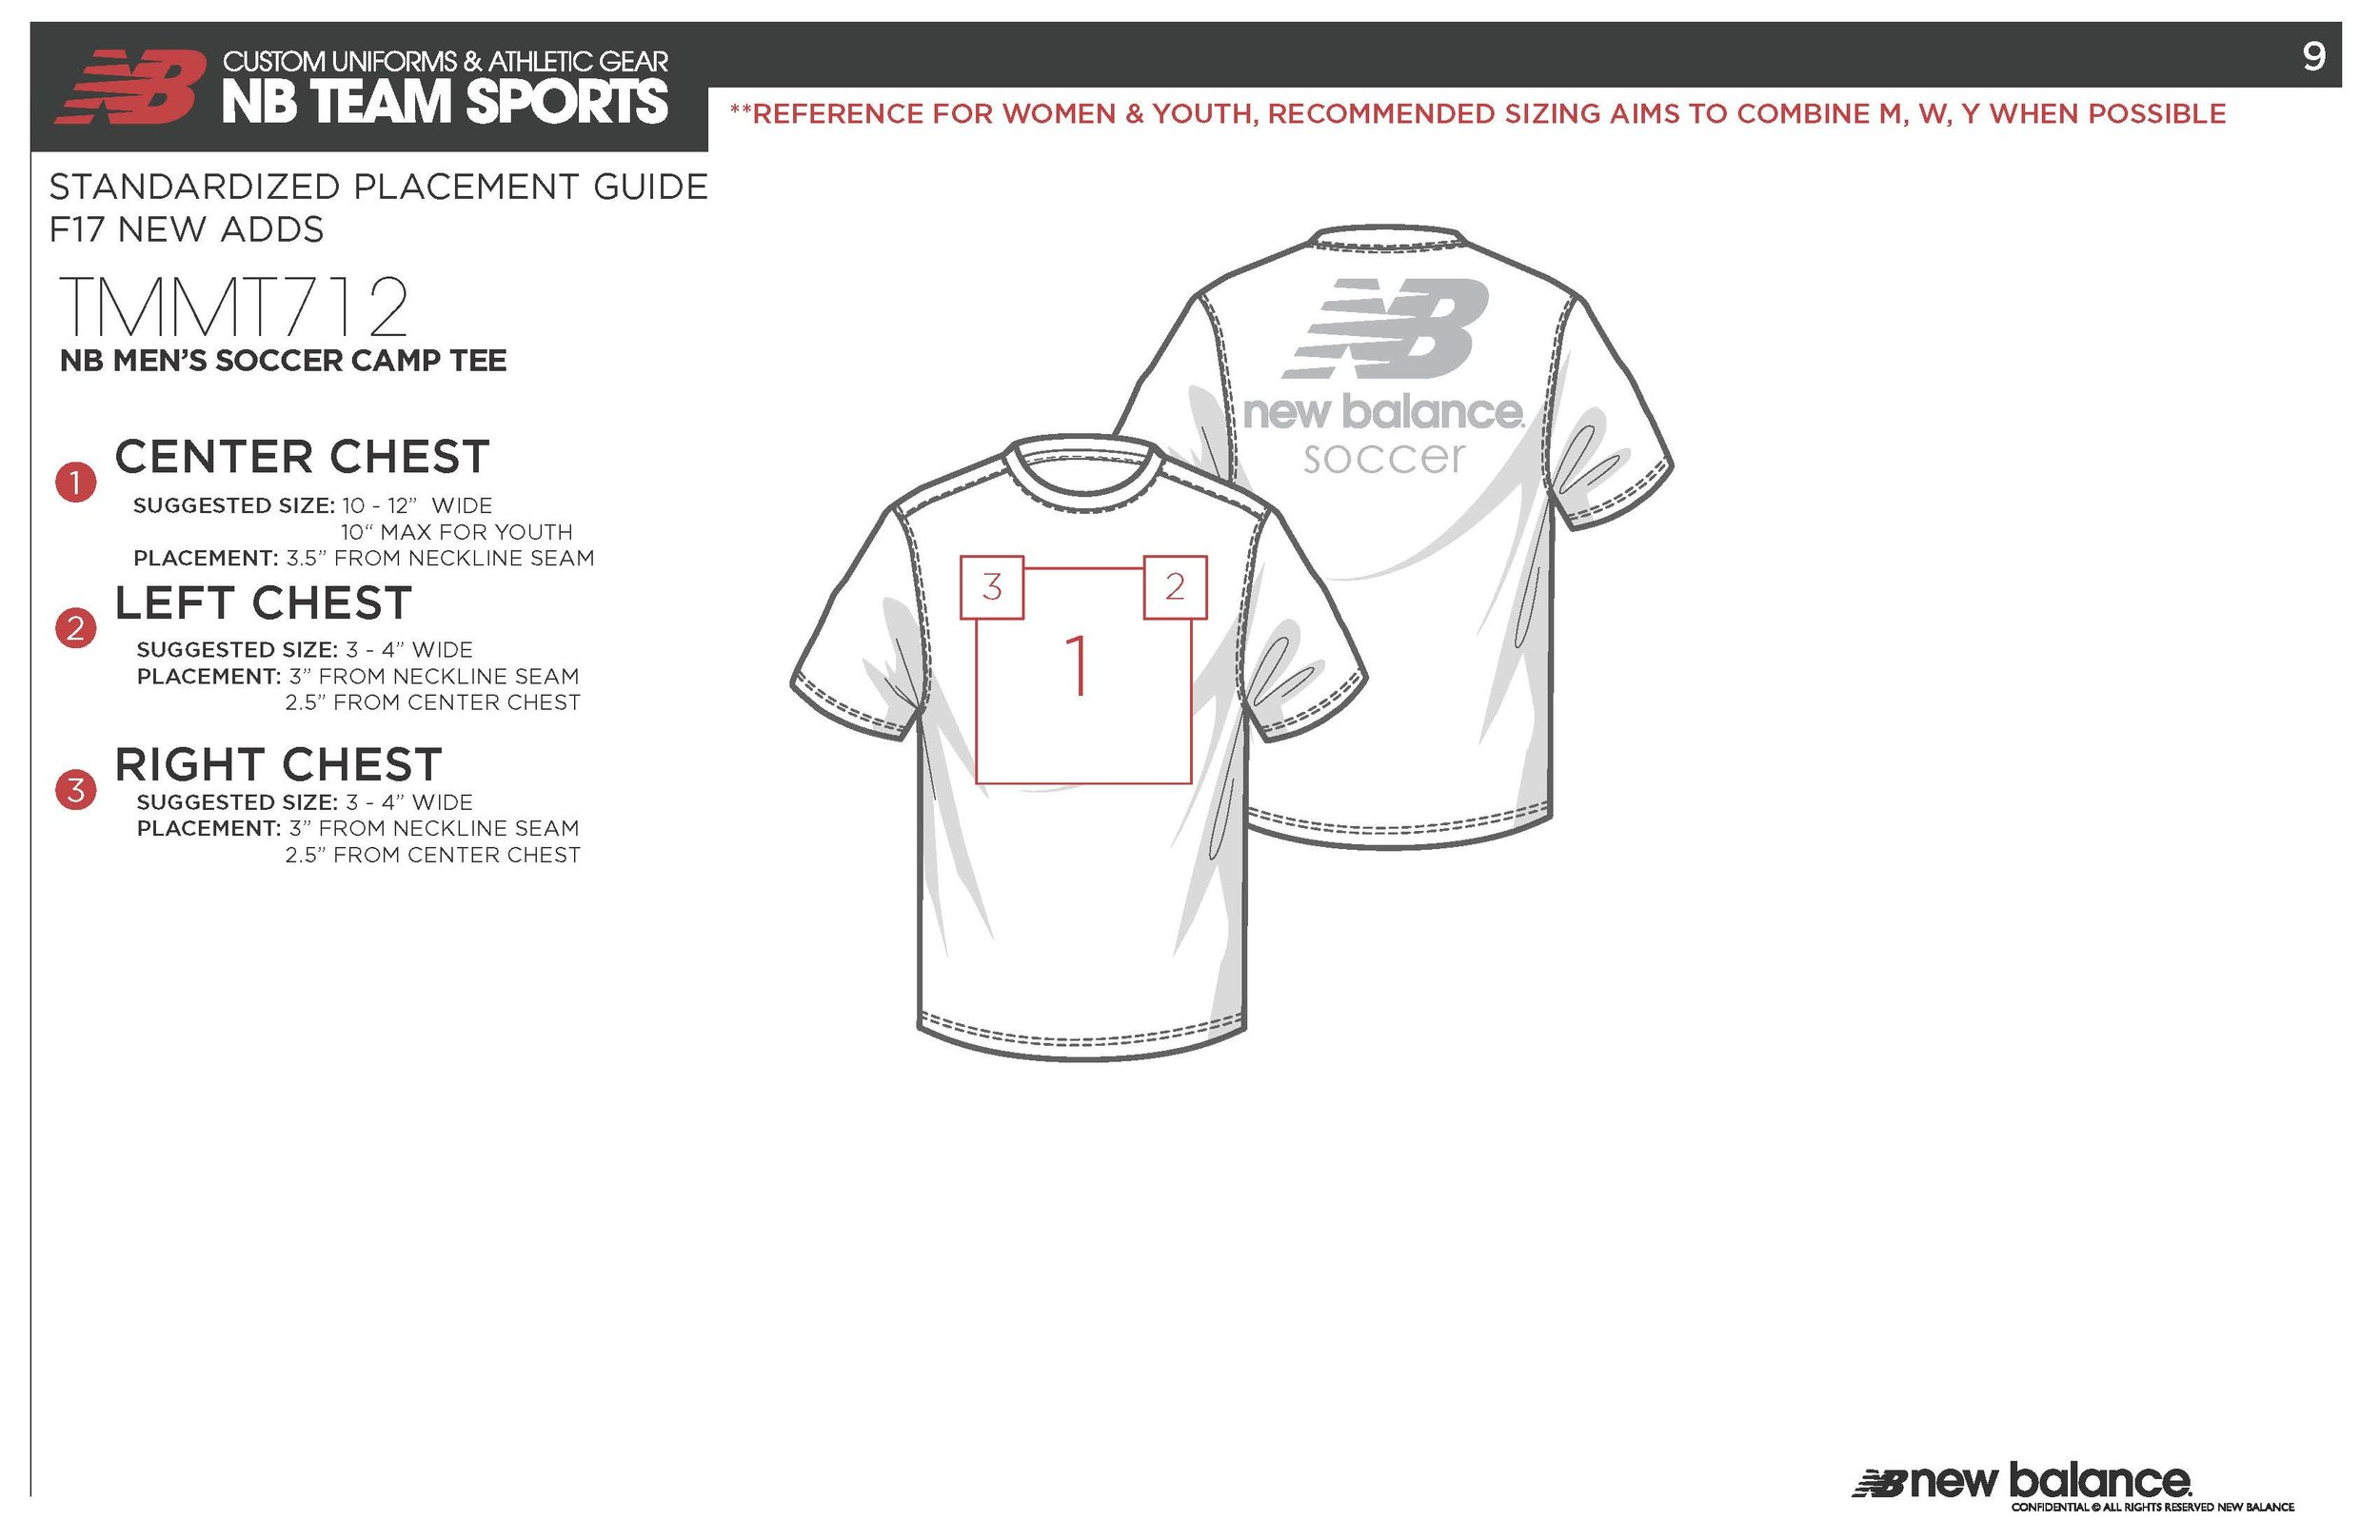 TEAMWEAR_Standardized Placement Guide Final_Page_9.jpg